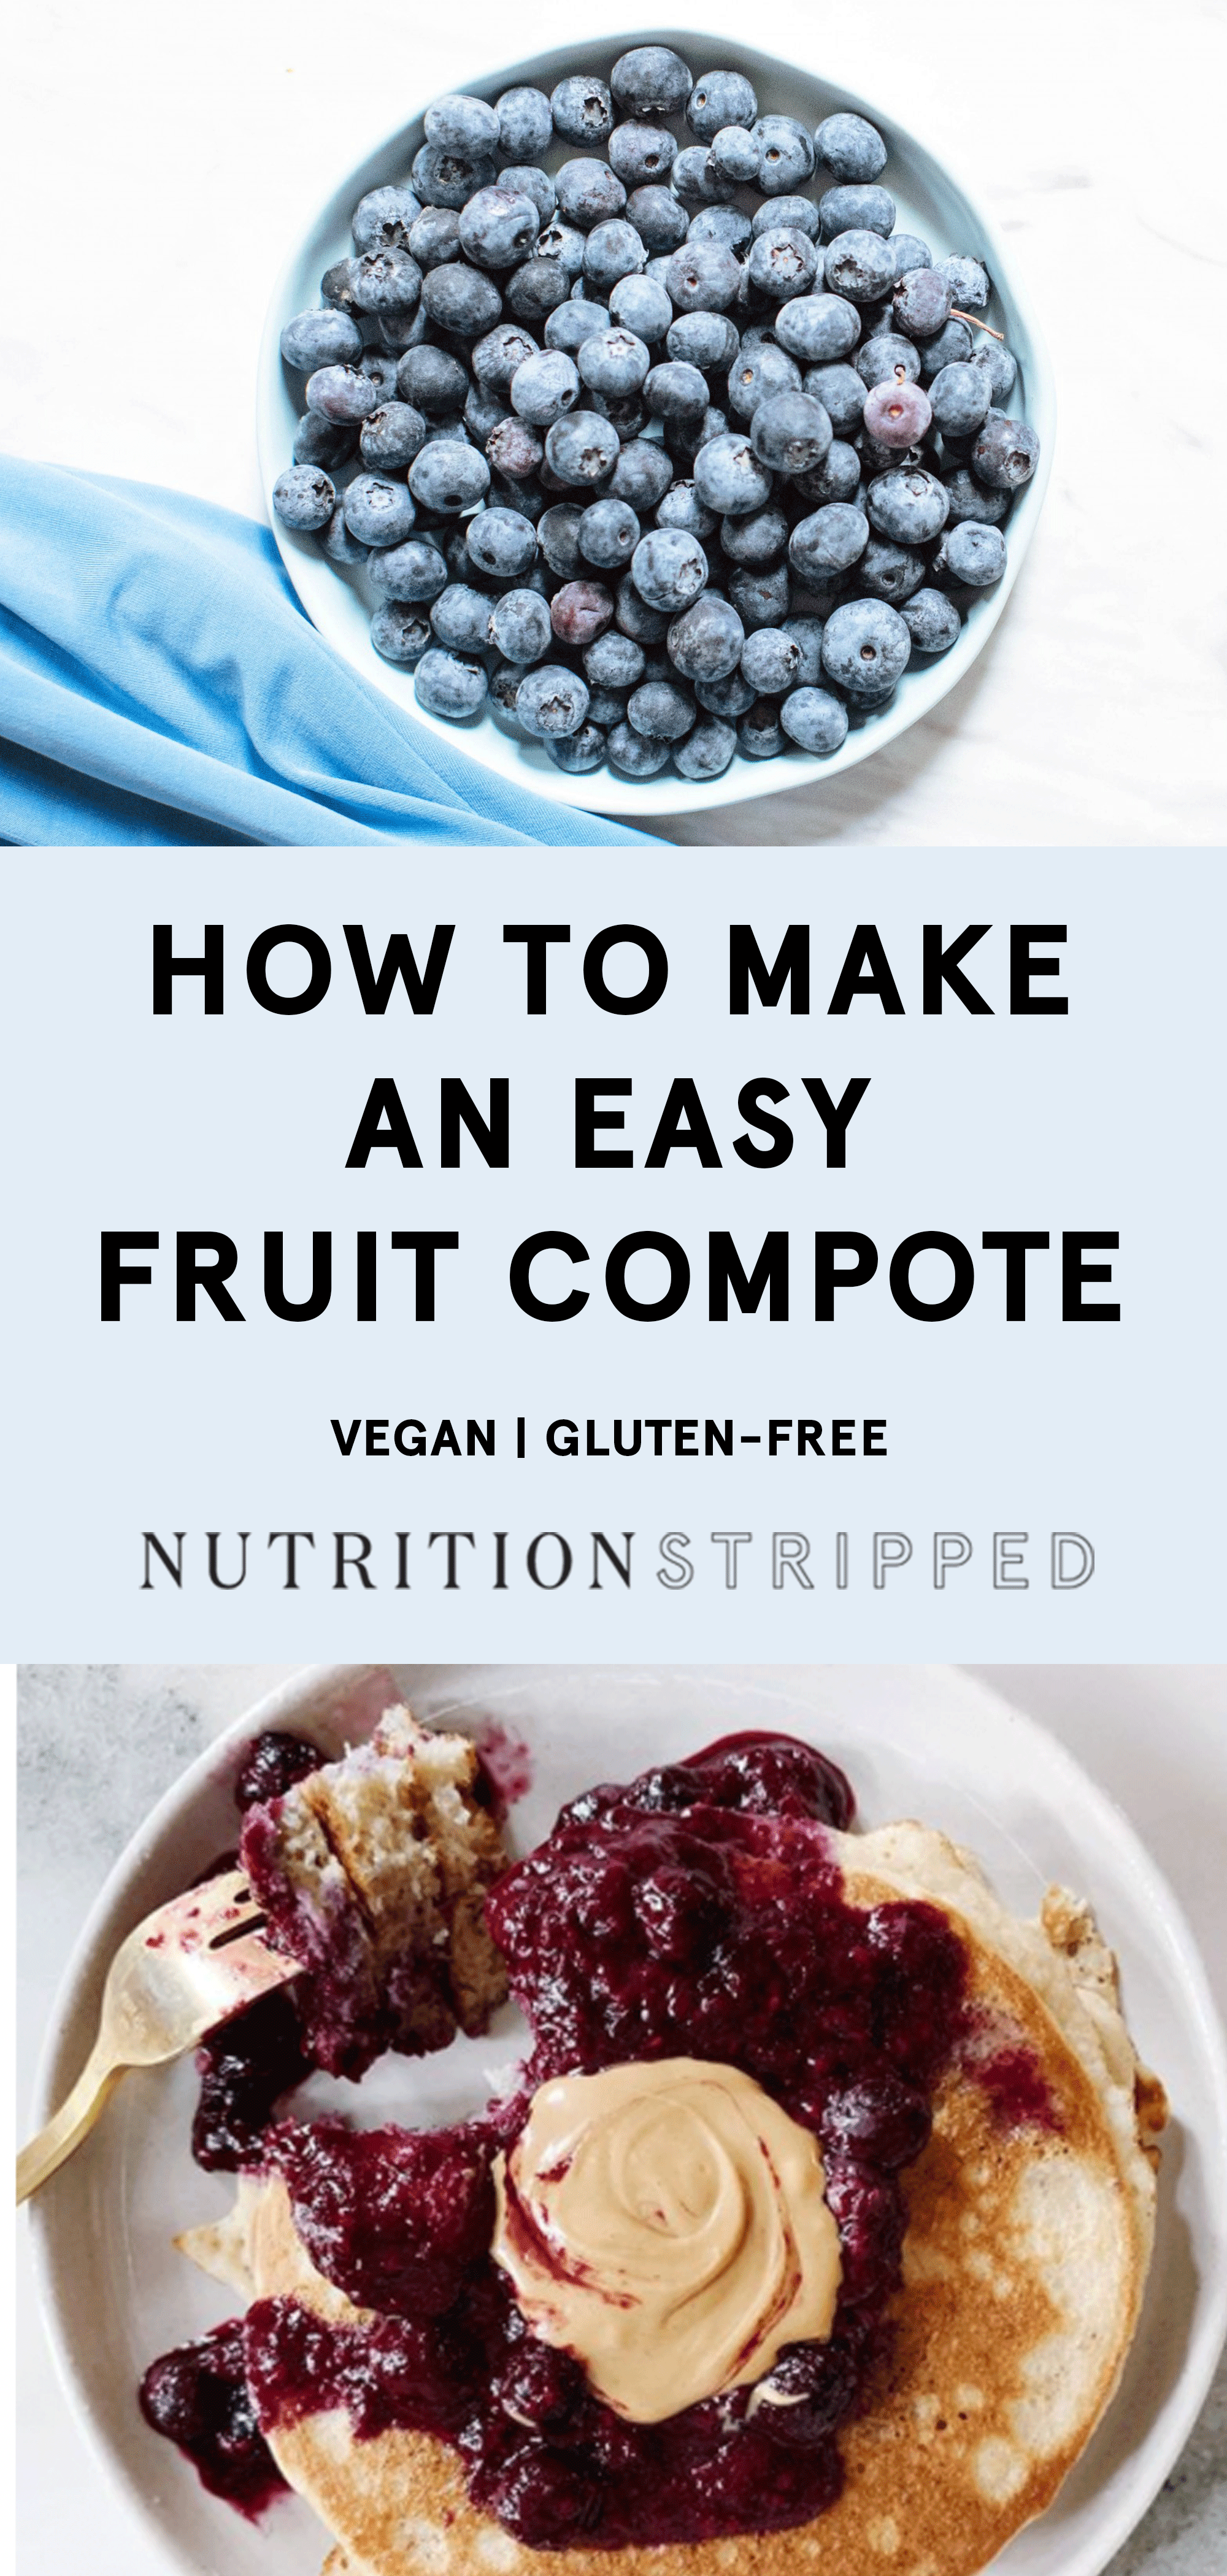 Fruit Compote Recipe | Nutrition Stripped